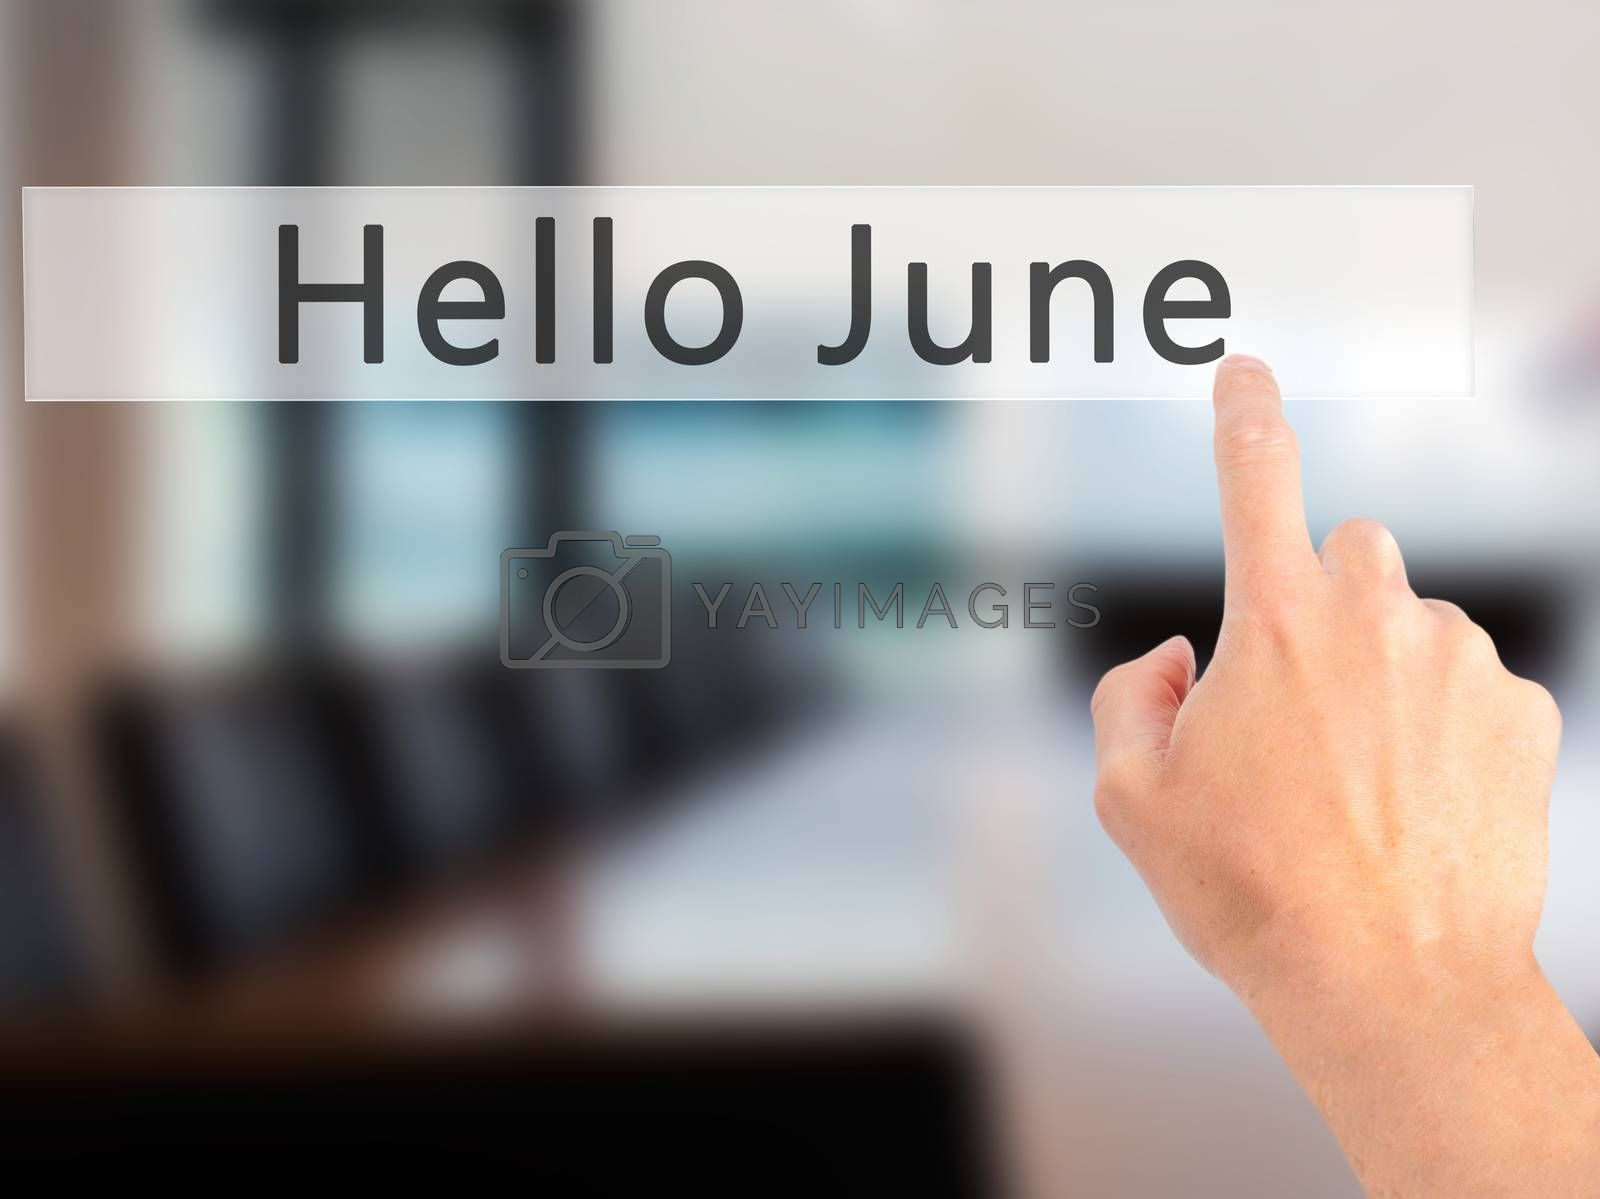 Hello June - Hand pressing a button on blurred background concep by jackald